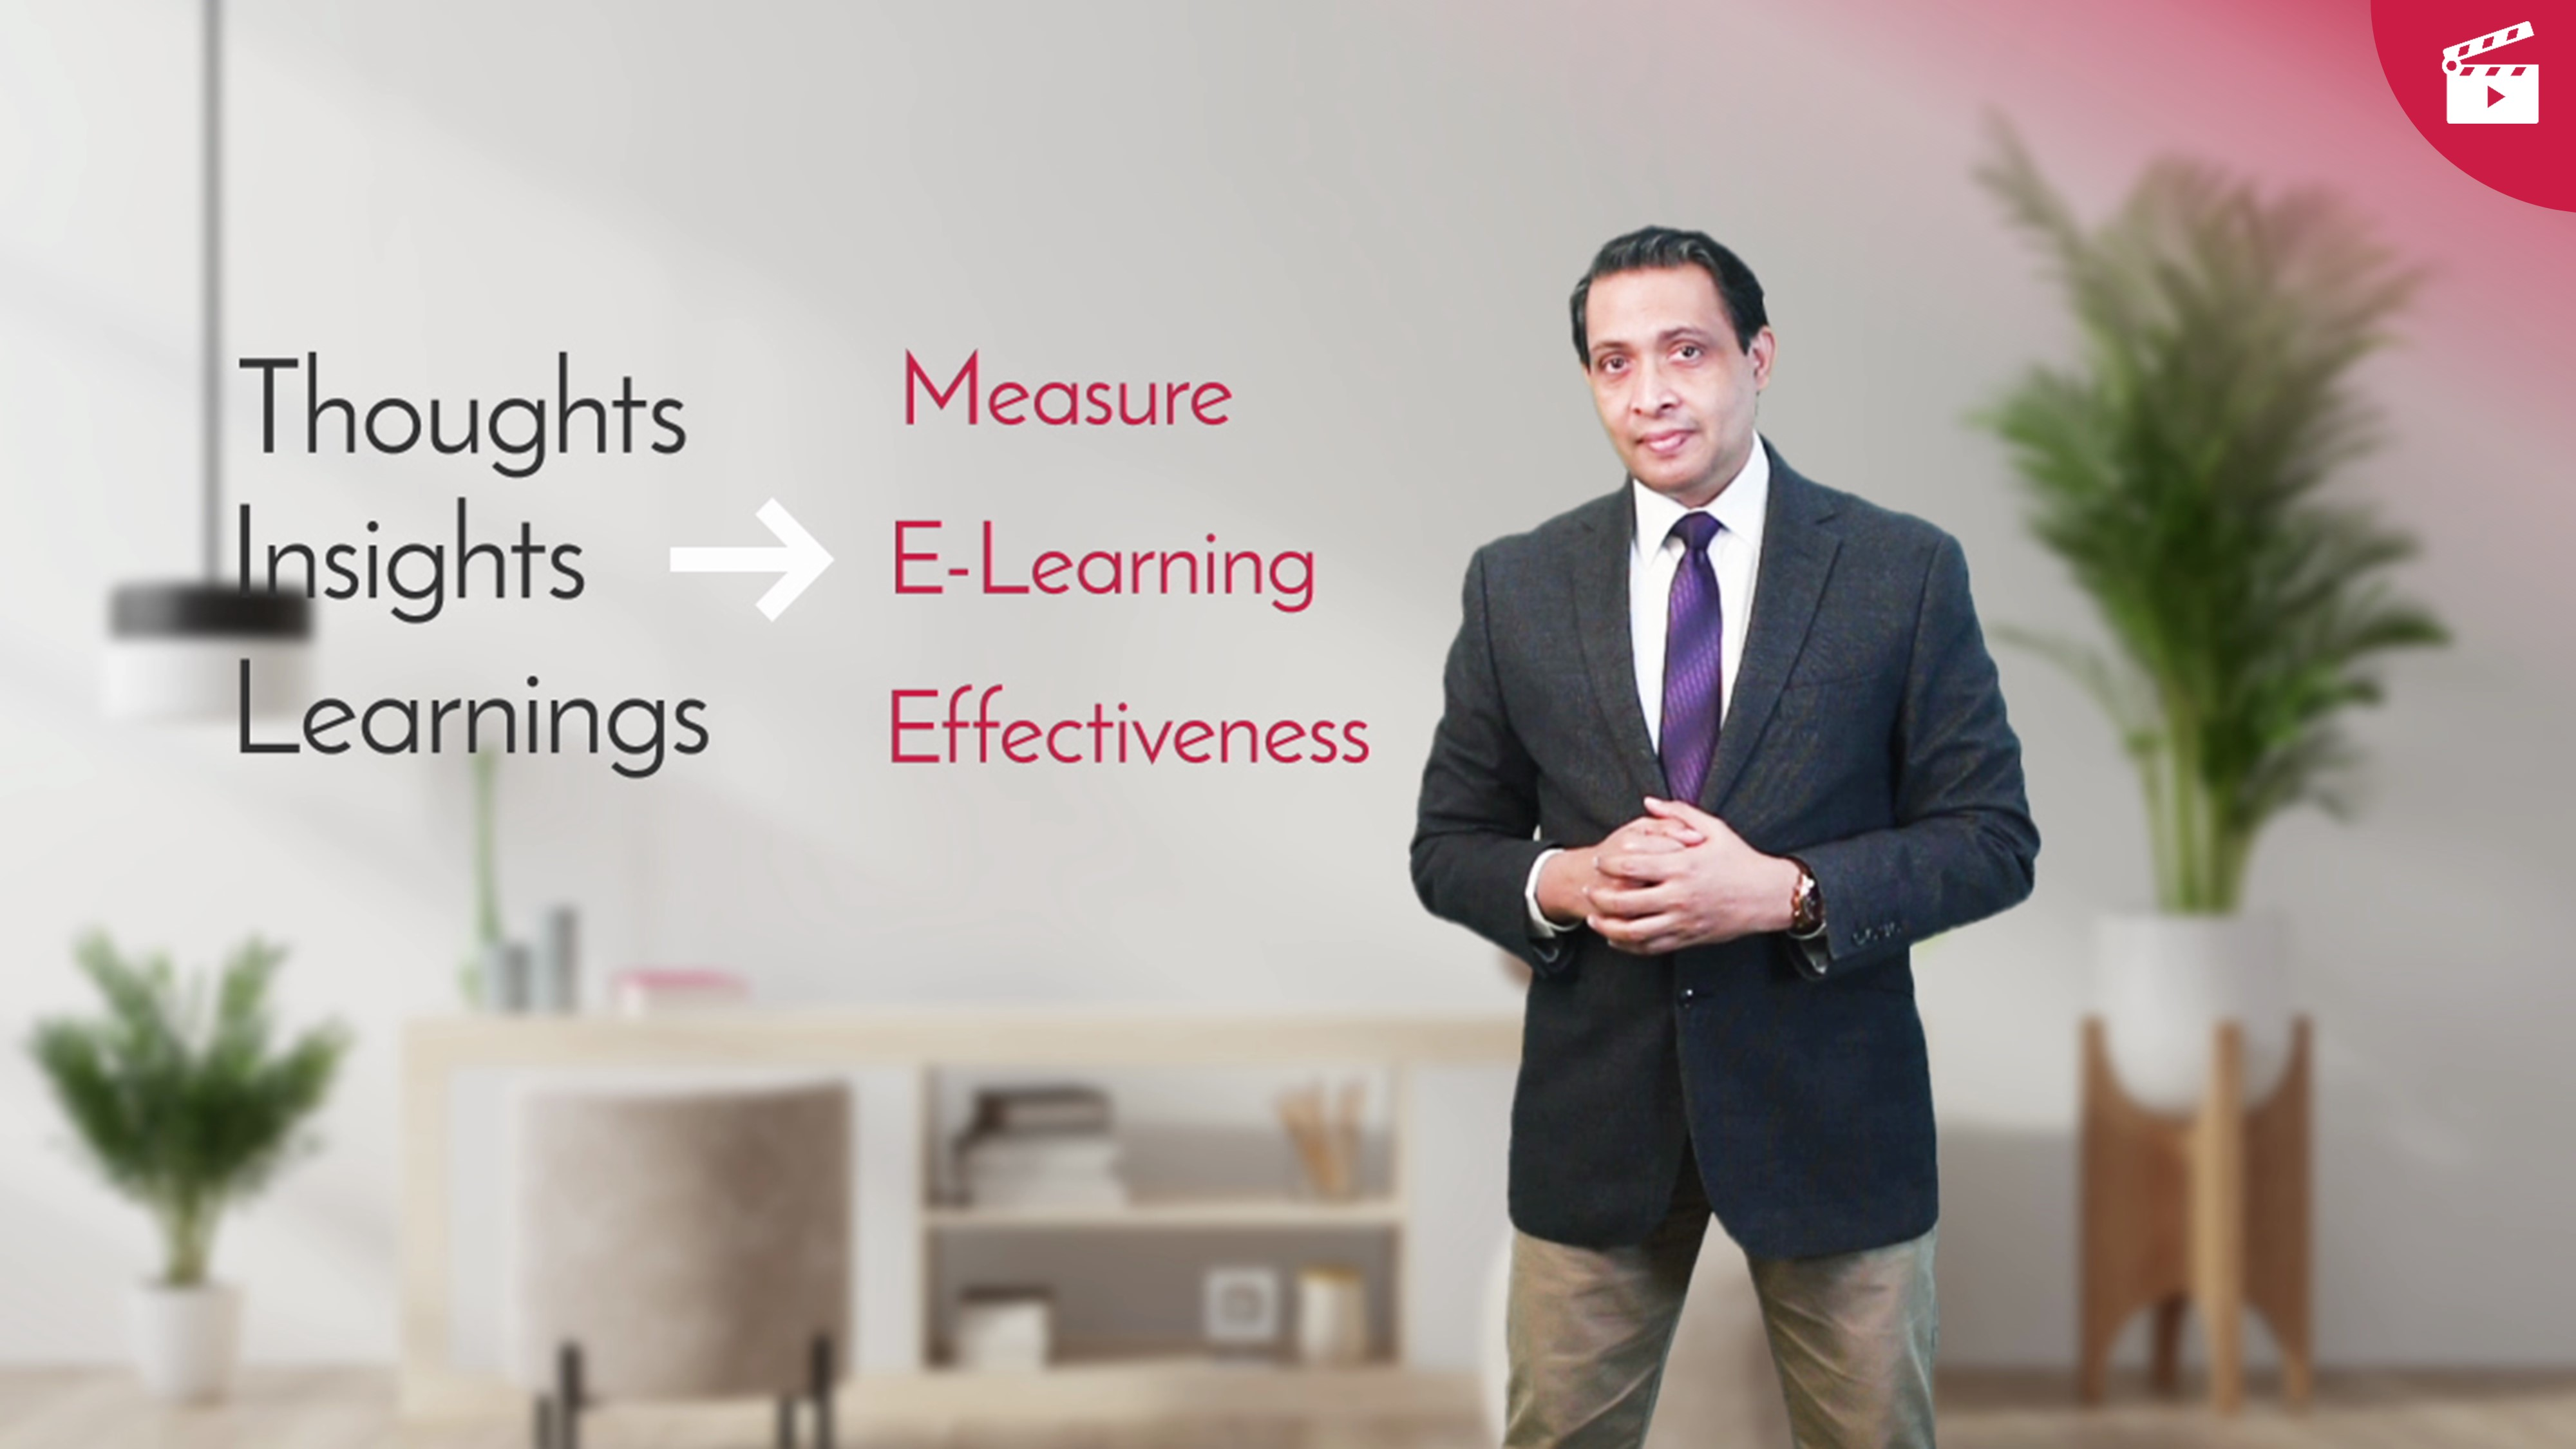 How Does One Measure eLearning Effectiveness